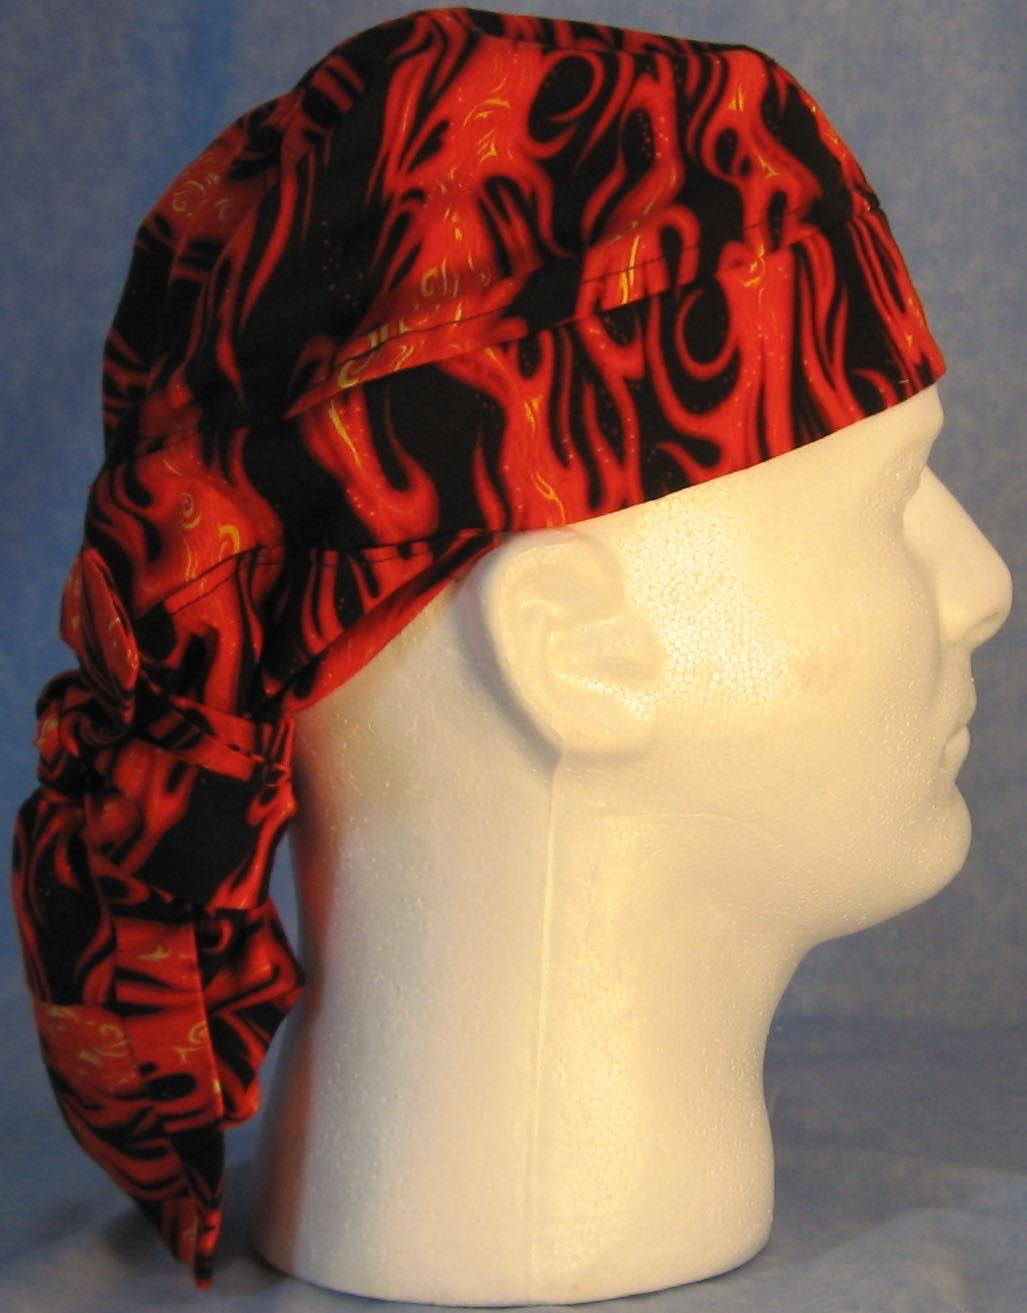 Hair Bag Do Rag in Red Orange Flames - Adult 1XL-3XL